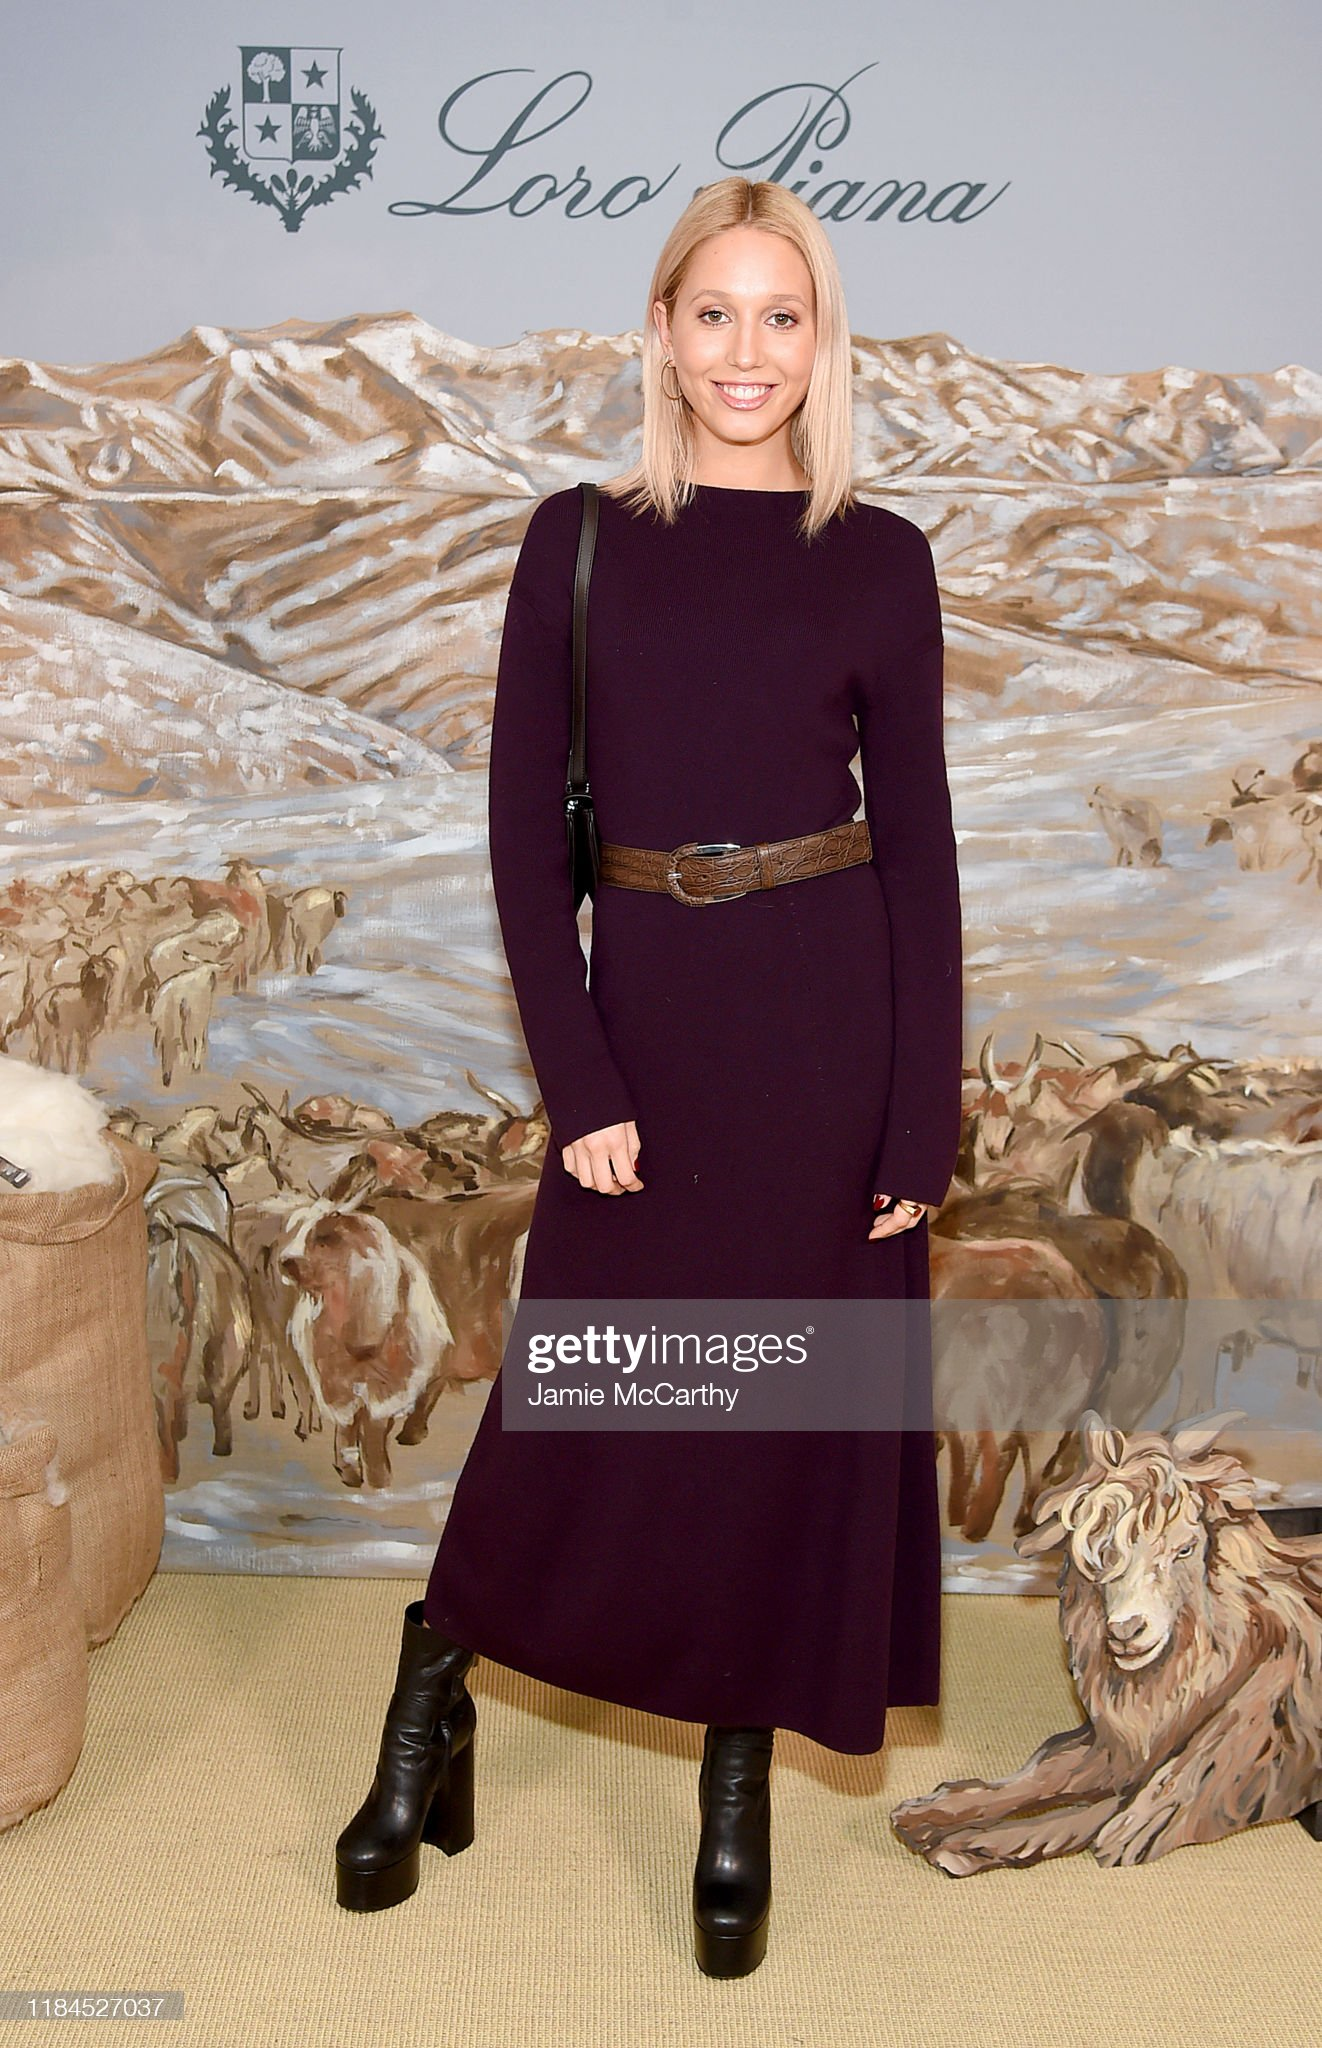 https://media.gettyimages.com/photos/princess-mariaolympia-of-greece-attends-the-new-york-city-film-of-picture-id1184527037?s=2048x2048